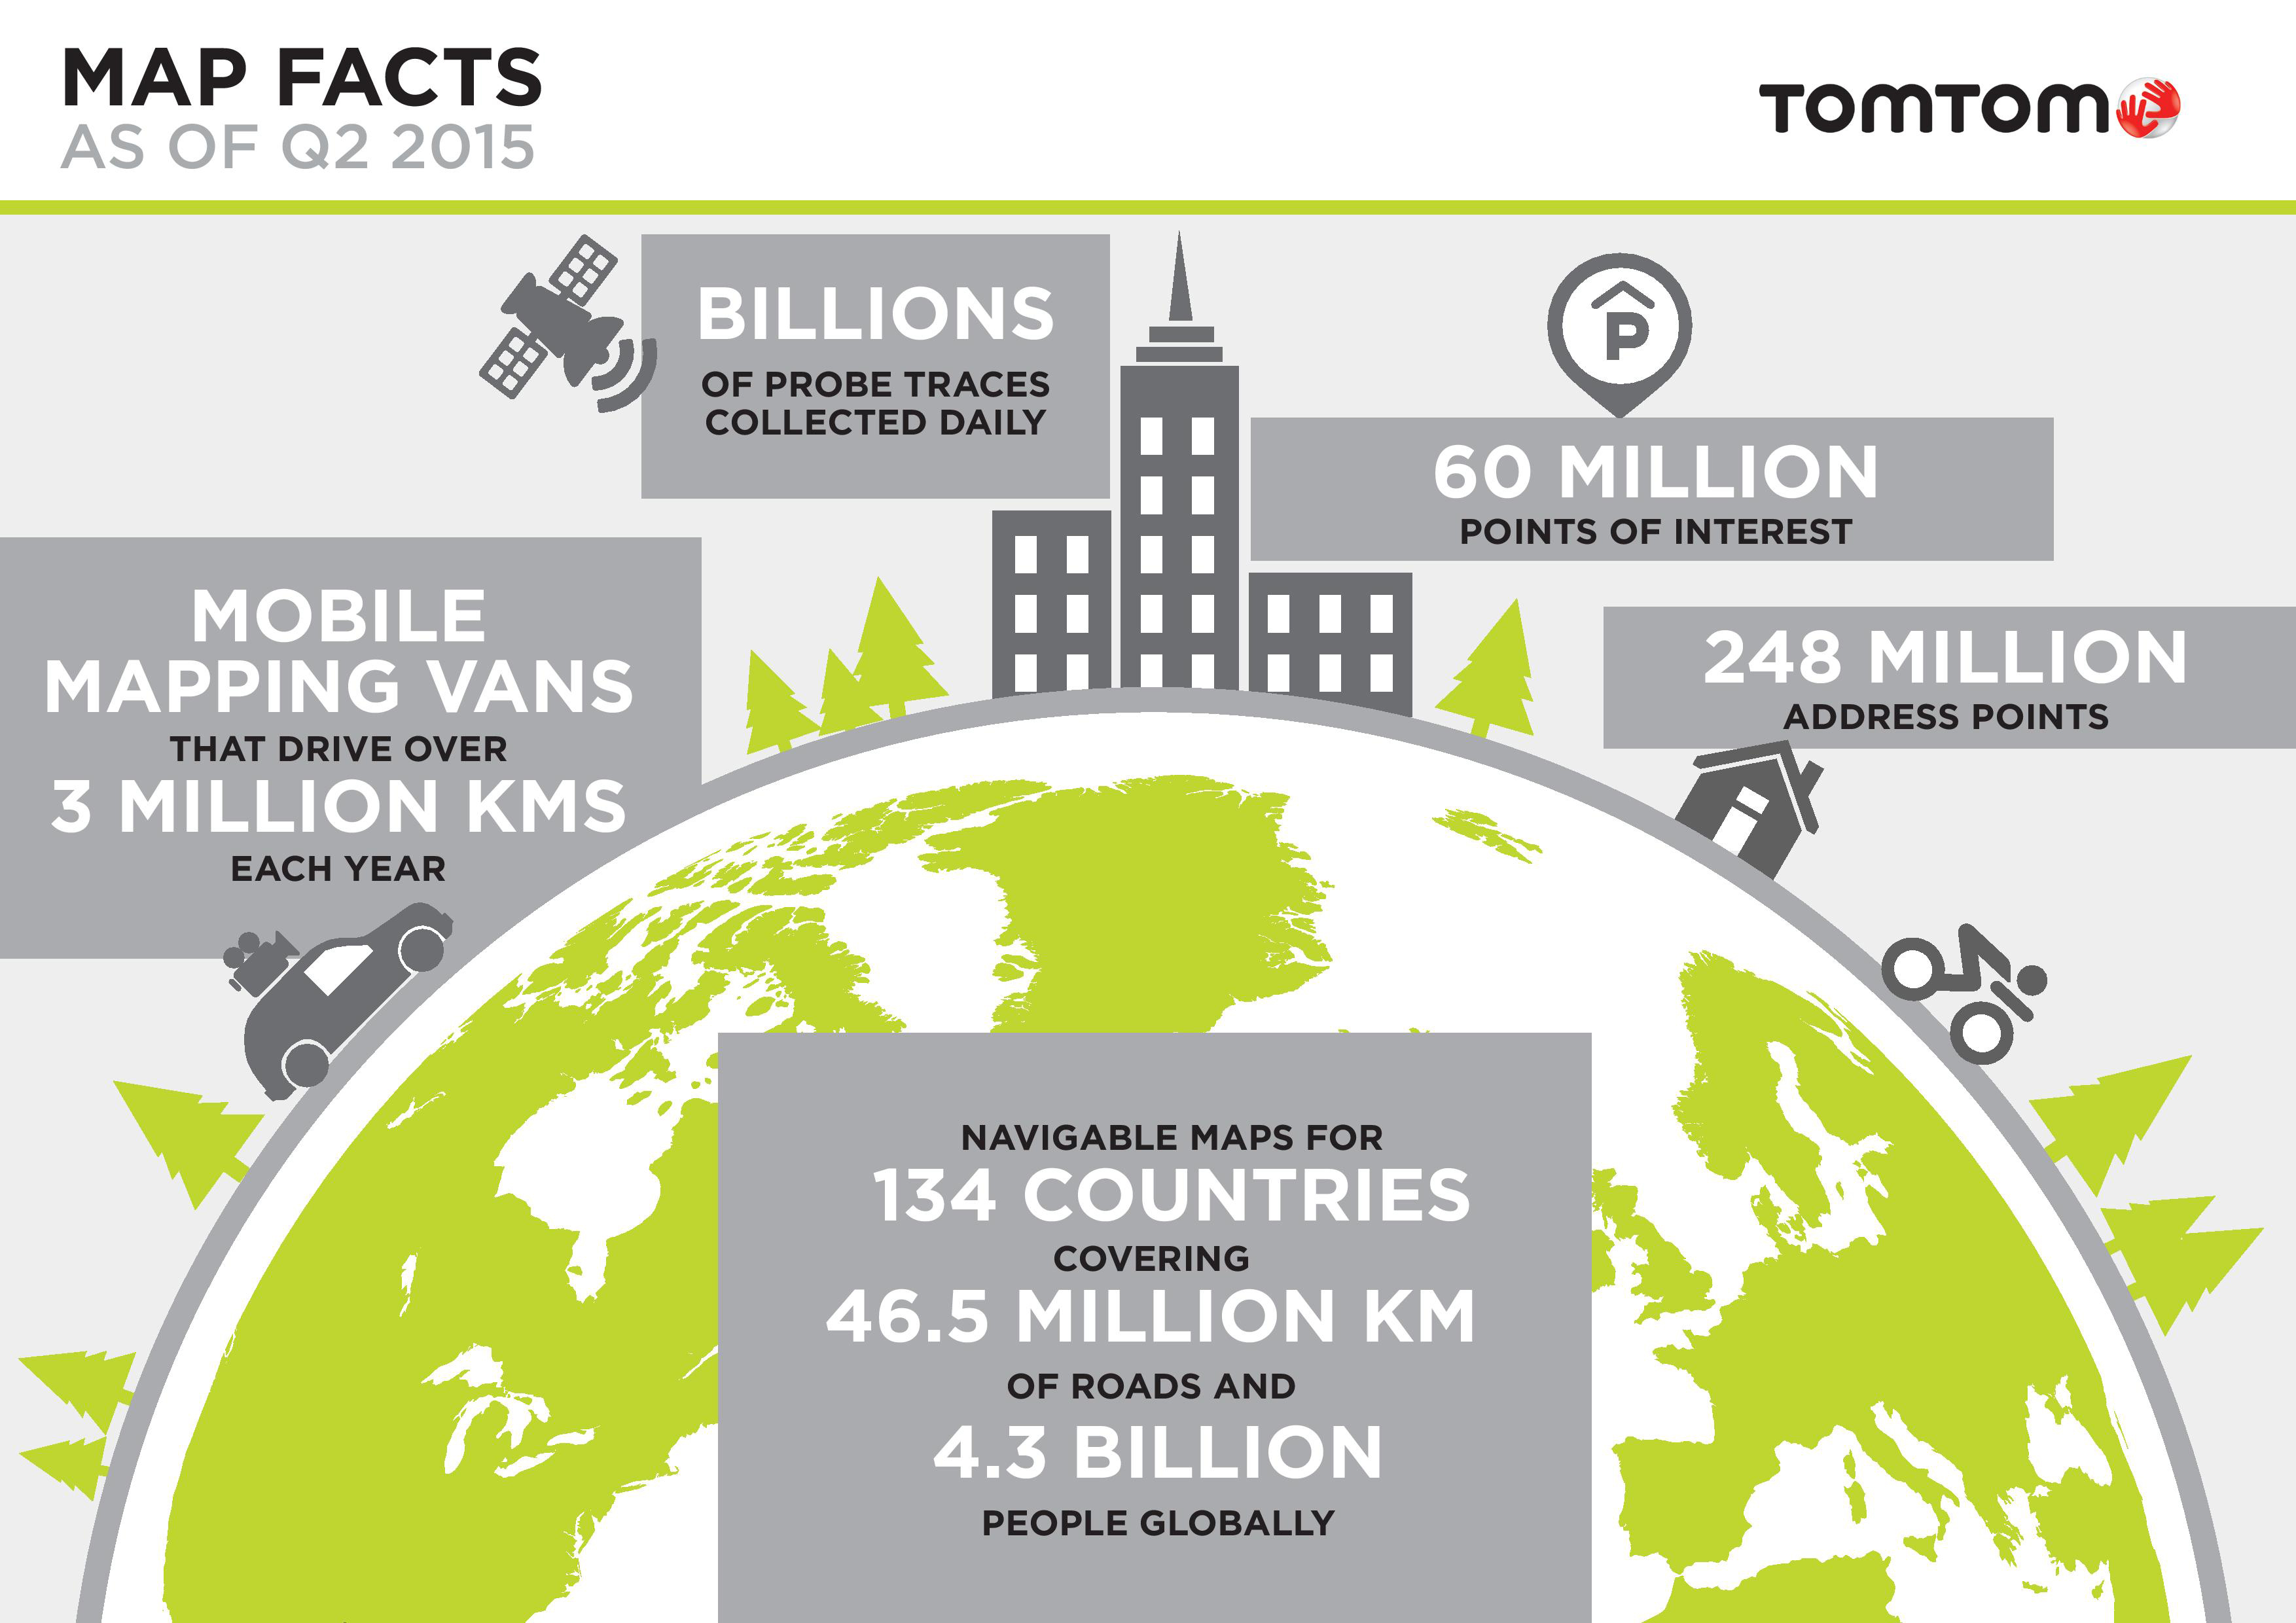 TomTom Expands Map Footprint Globally Business Wire - Us maps for tomtom